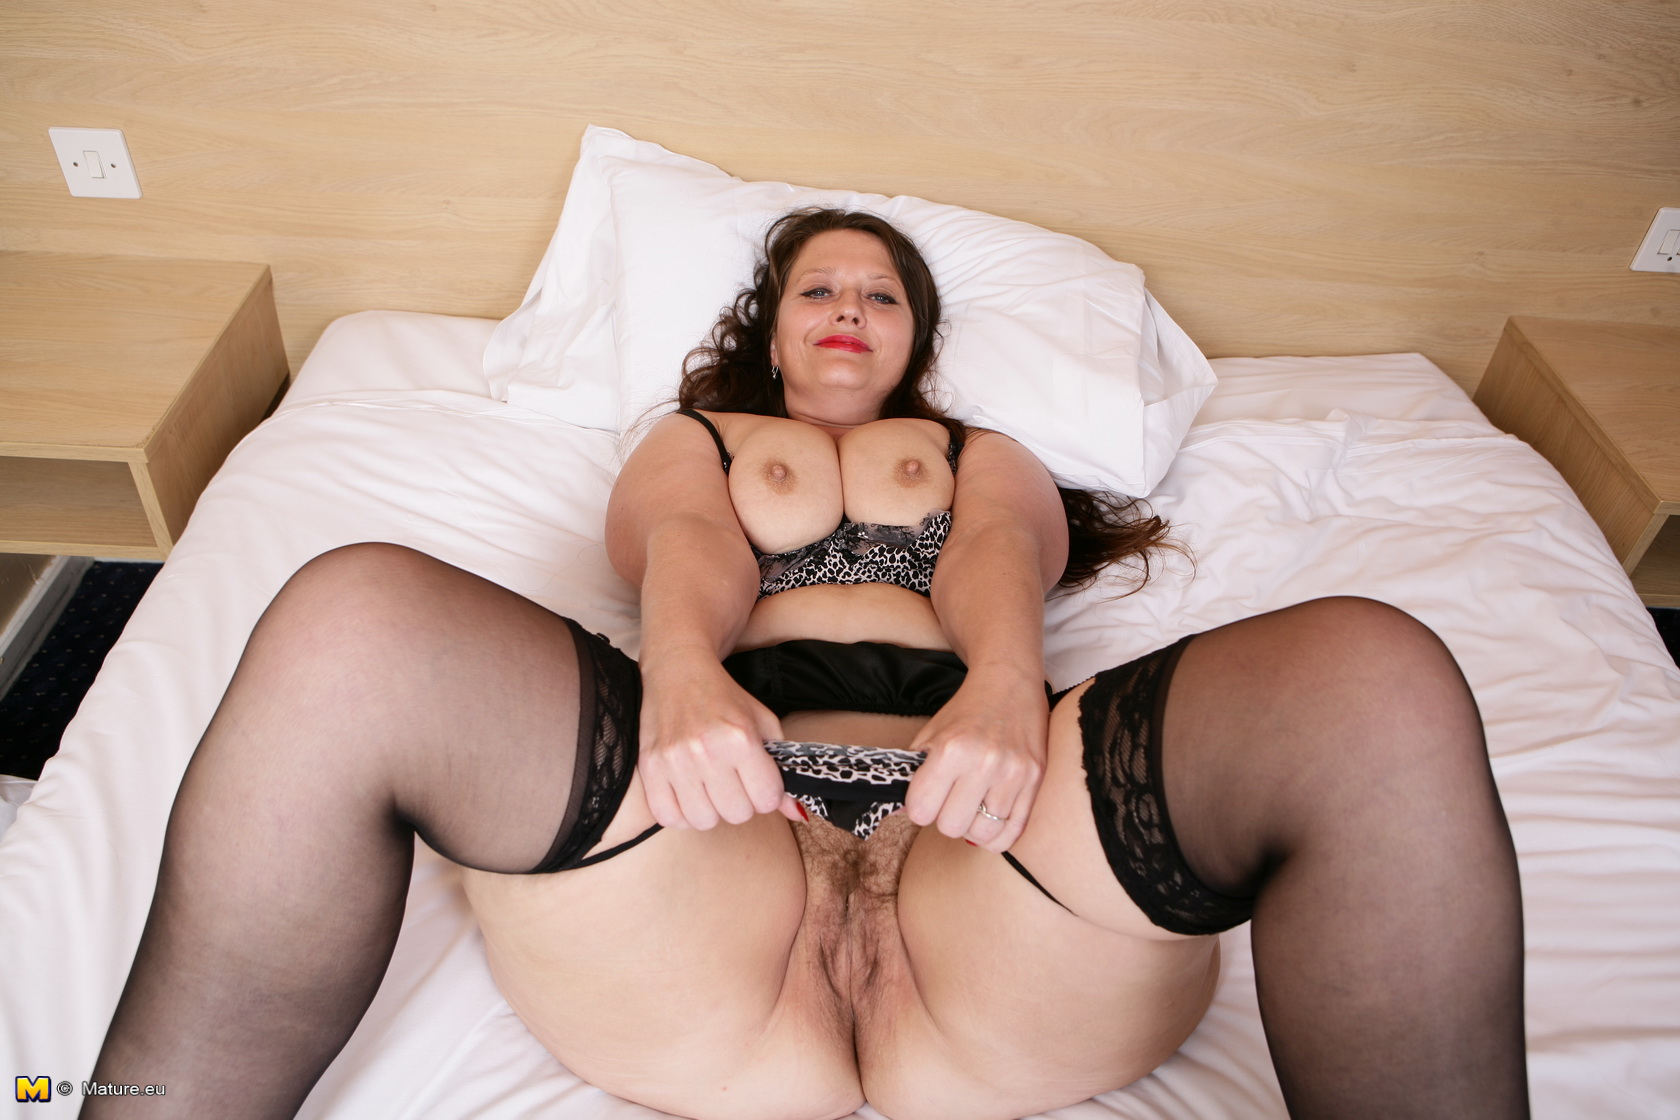 old bbw cunt reaching climax in this homemade selfie shooting